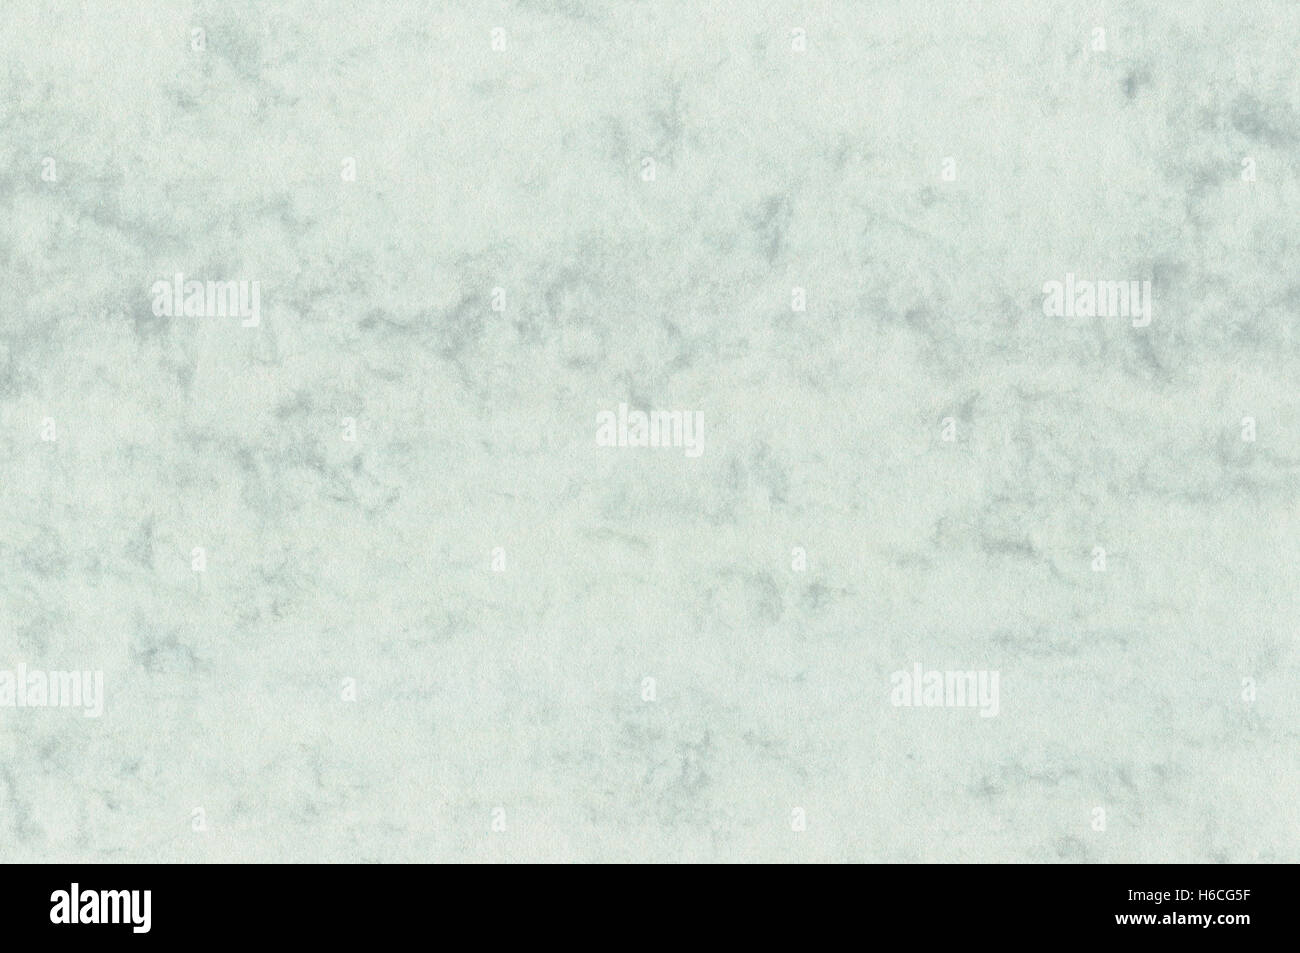 Natural decorative art letter marble paper texture, bright fine textured sea green blank empty copy space background Stock Photo